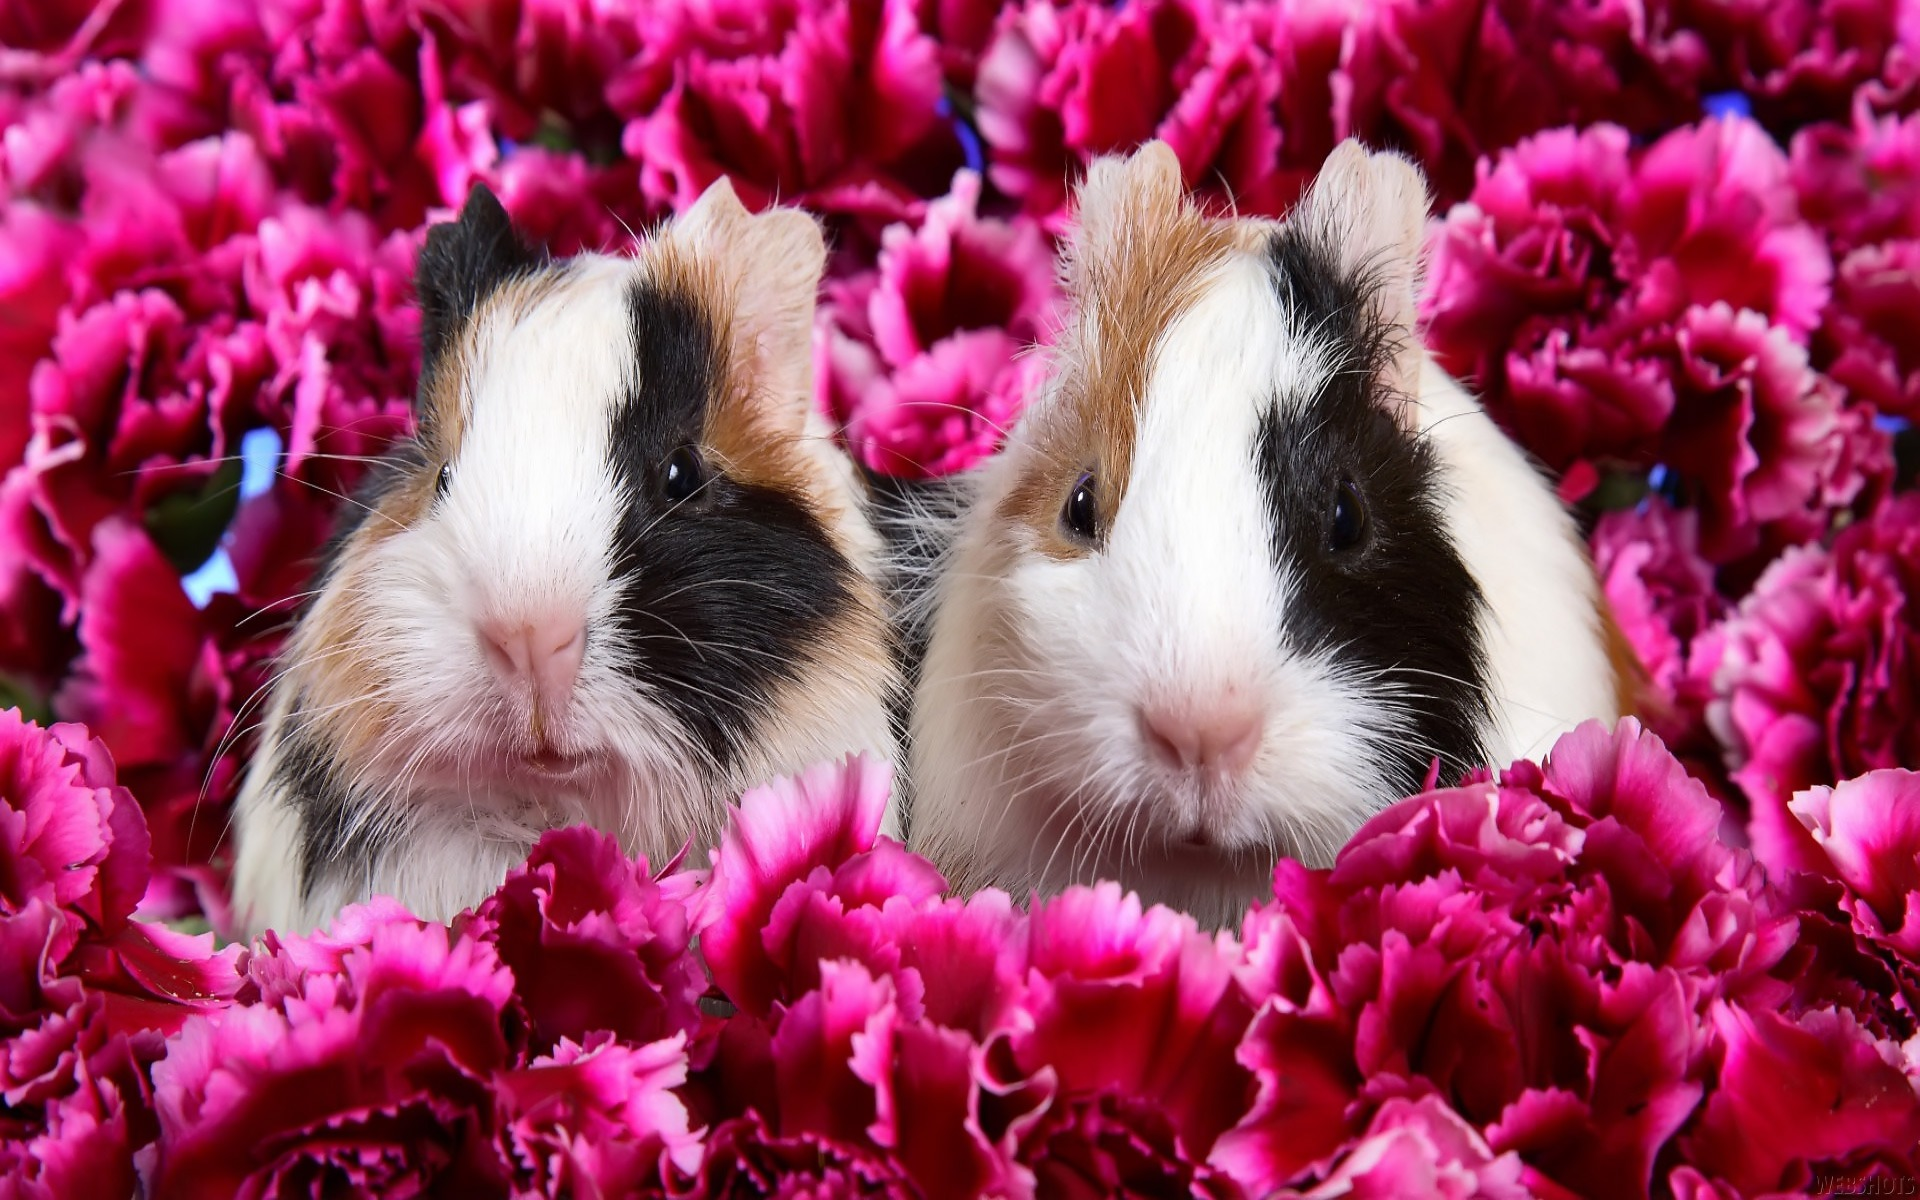 Wallpaper download all - Rabbits Wallpaper Other Animals Wallpapers